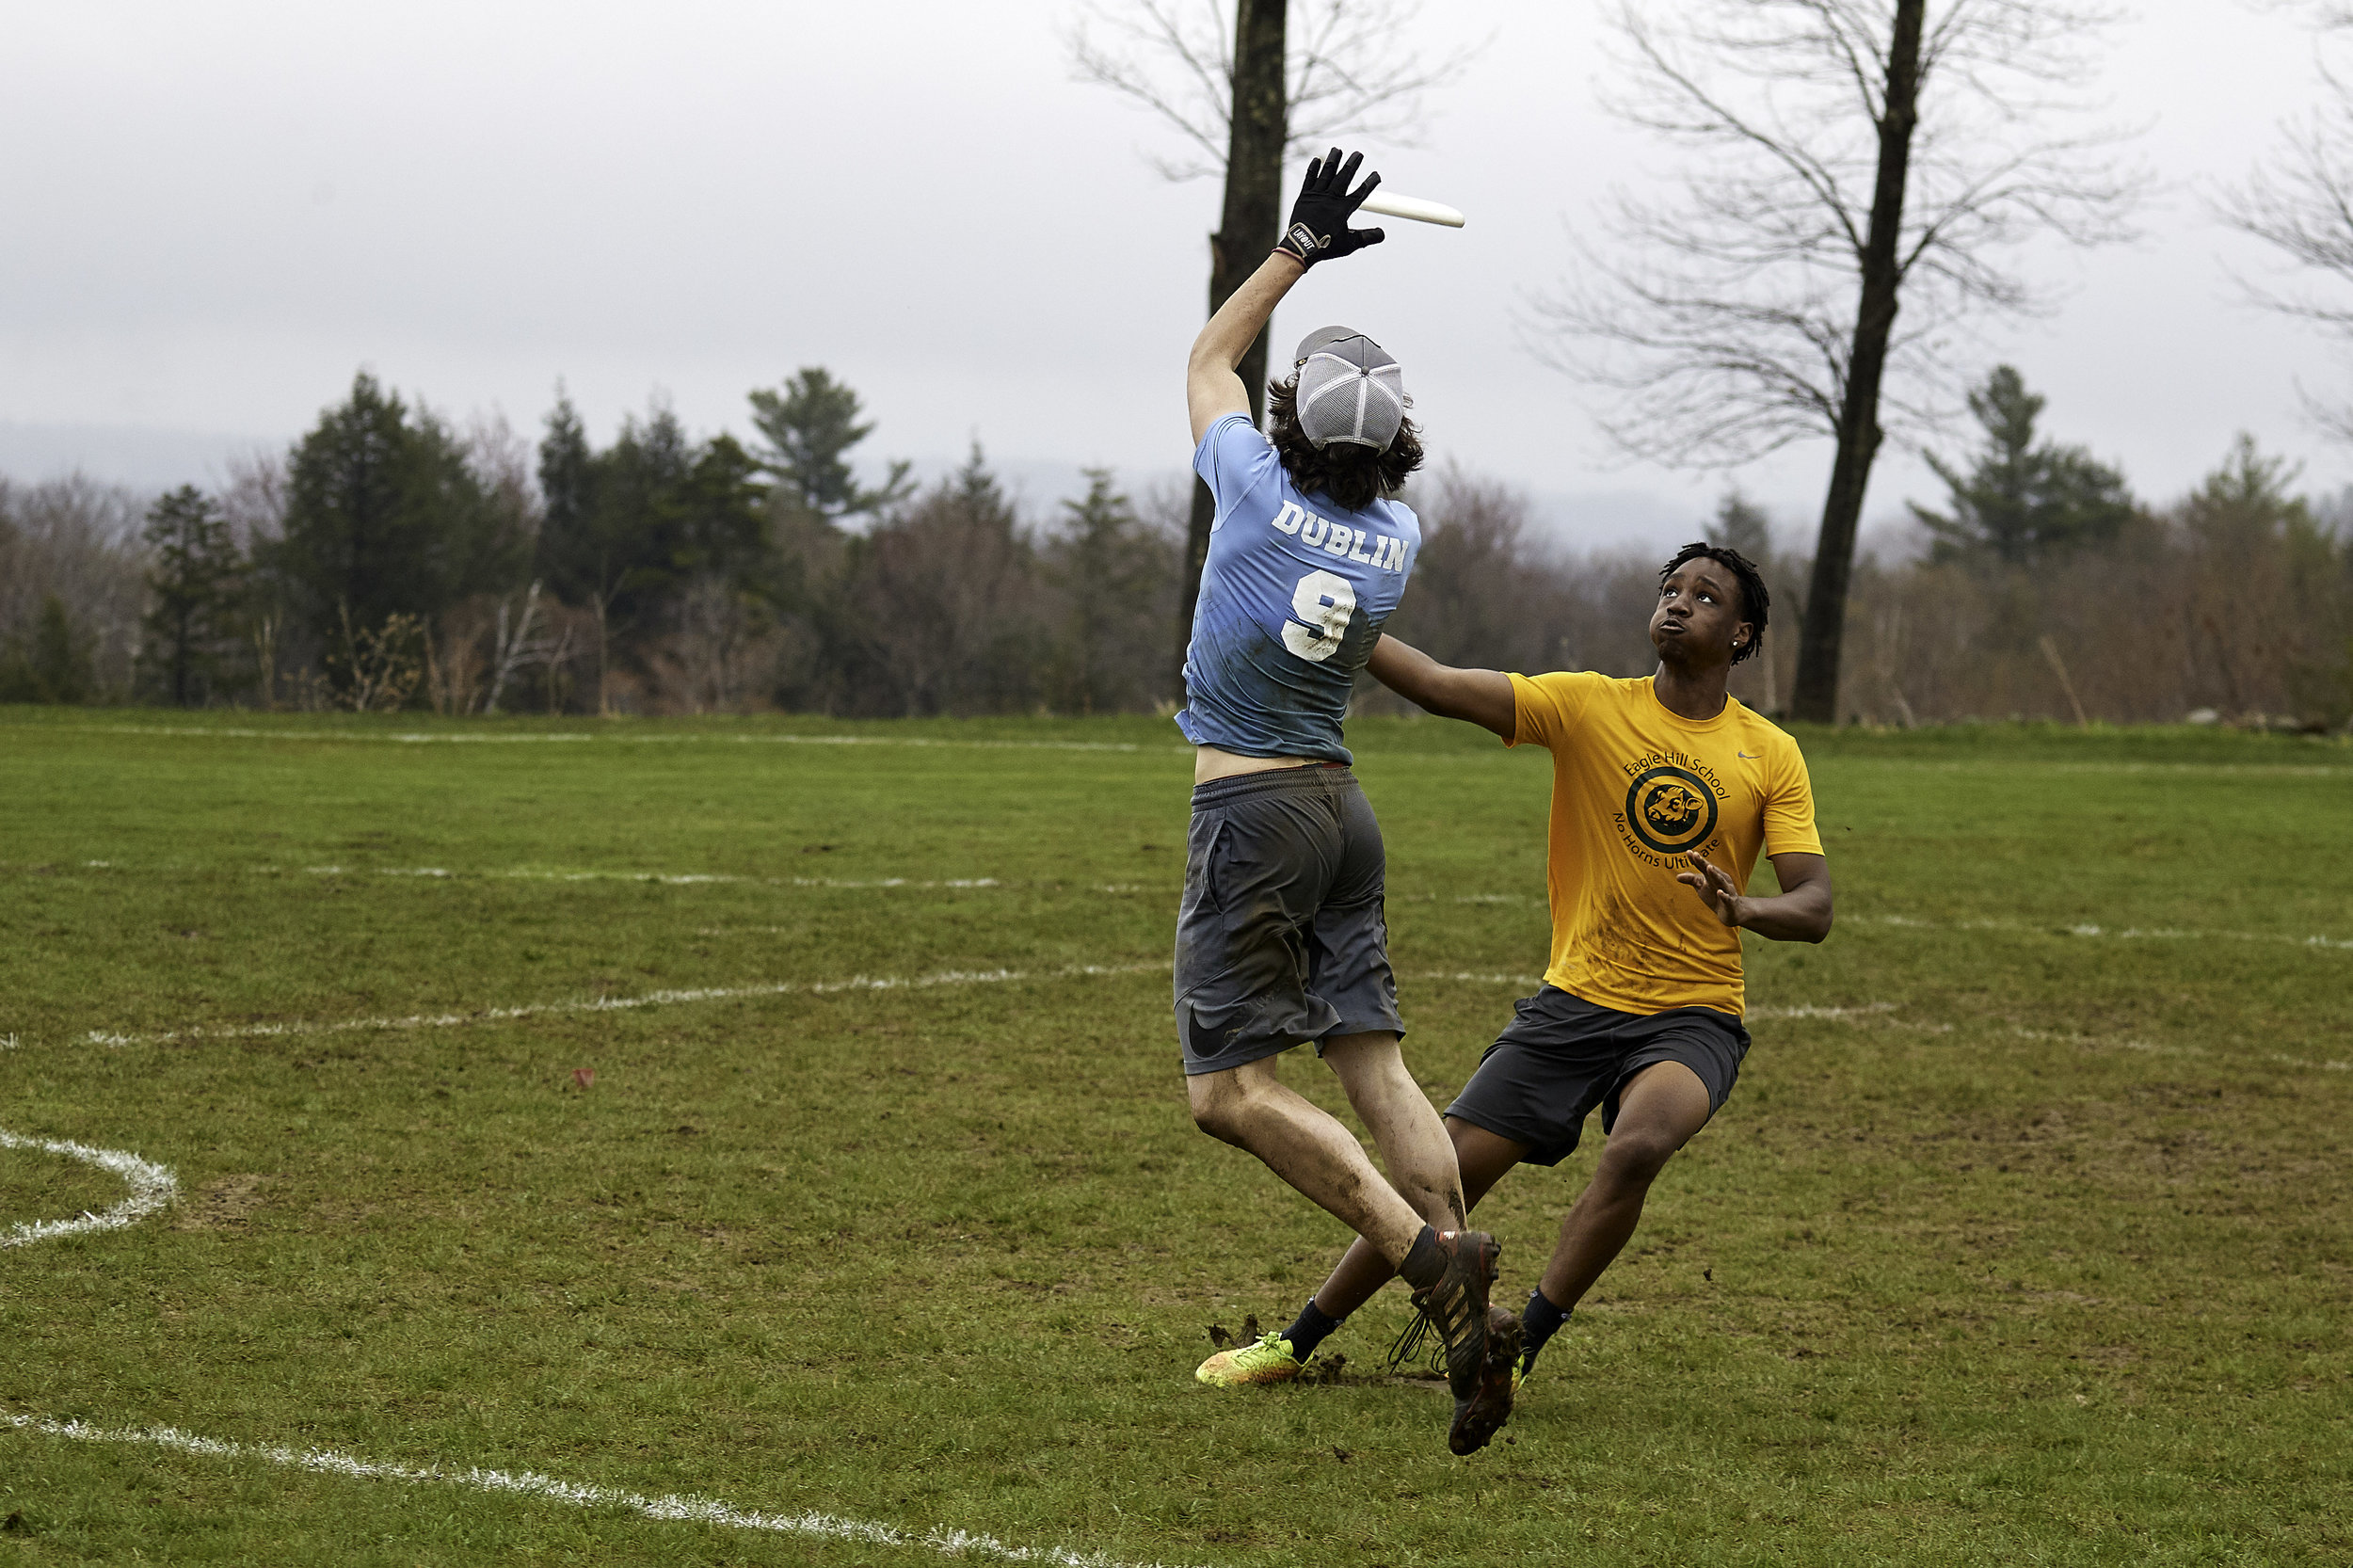 Ultimate Frisbee vs. Eagle Hill School - May 3, 2019 - 188664.jpg